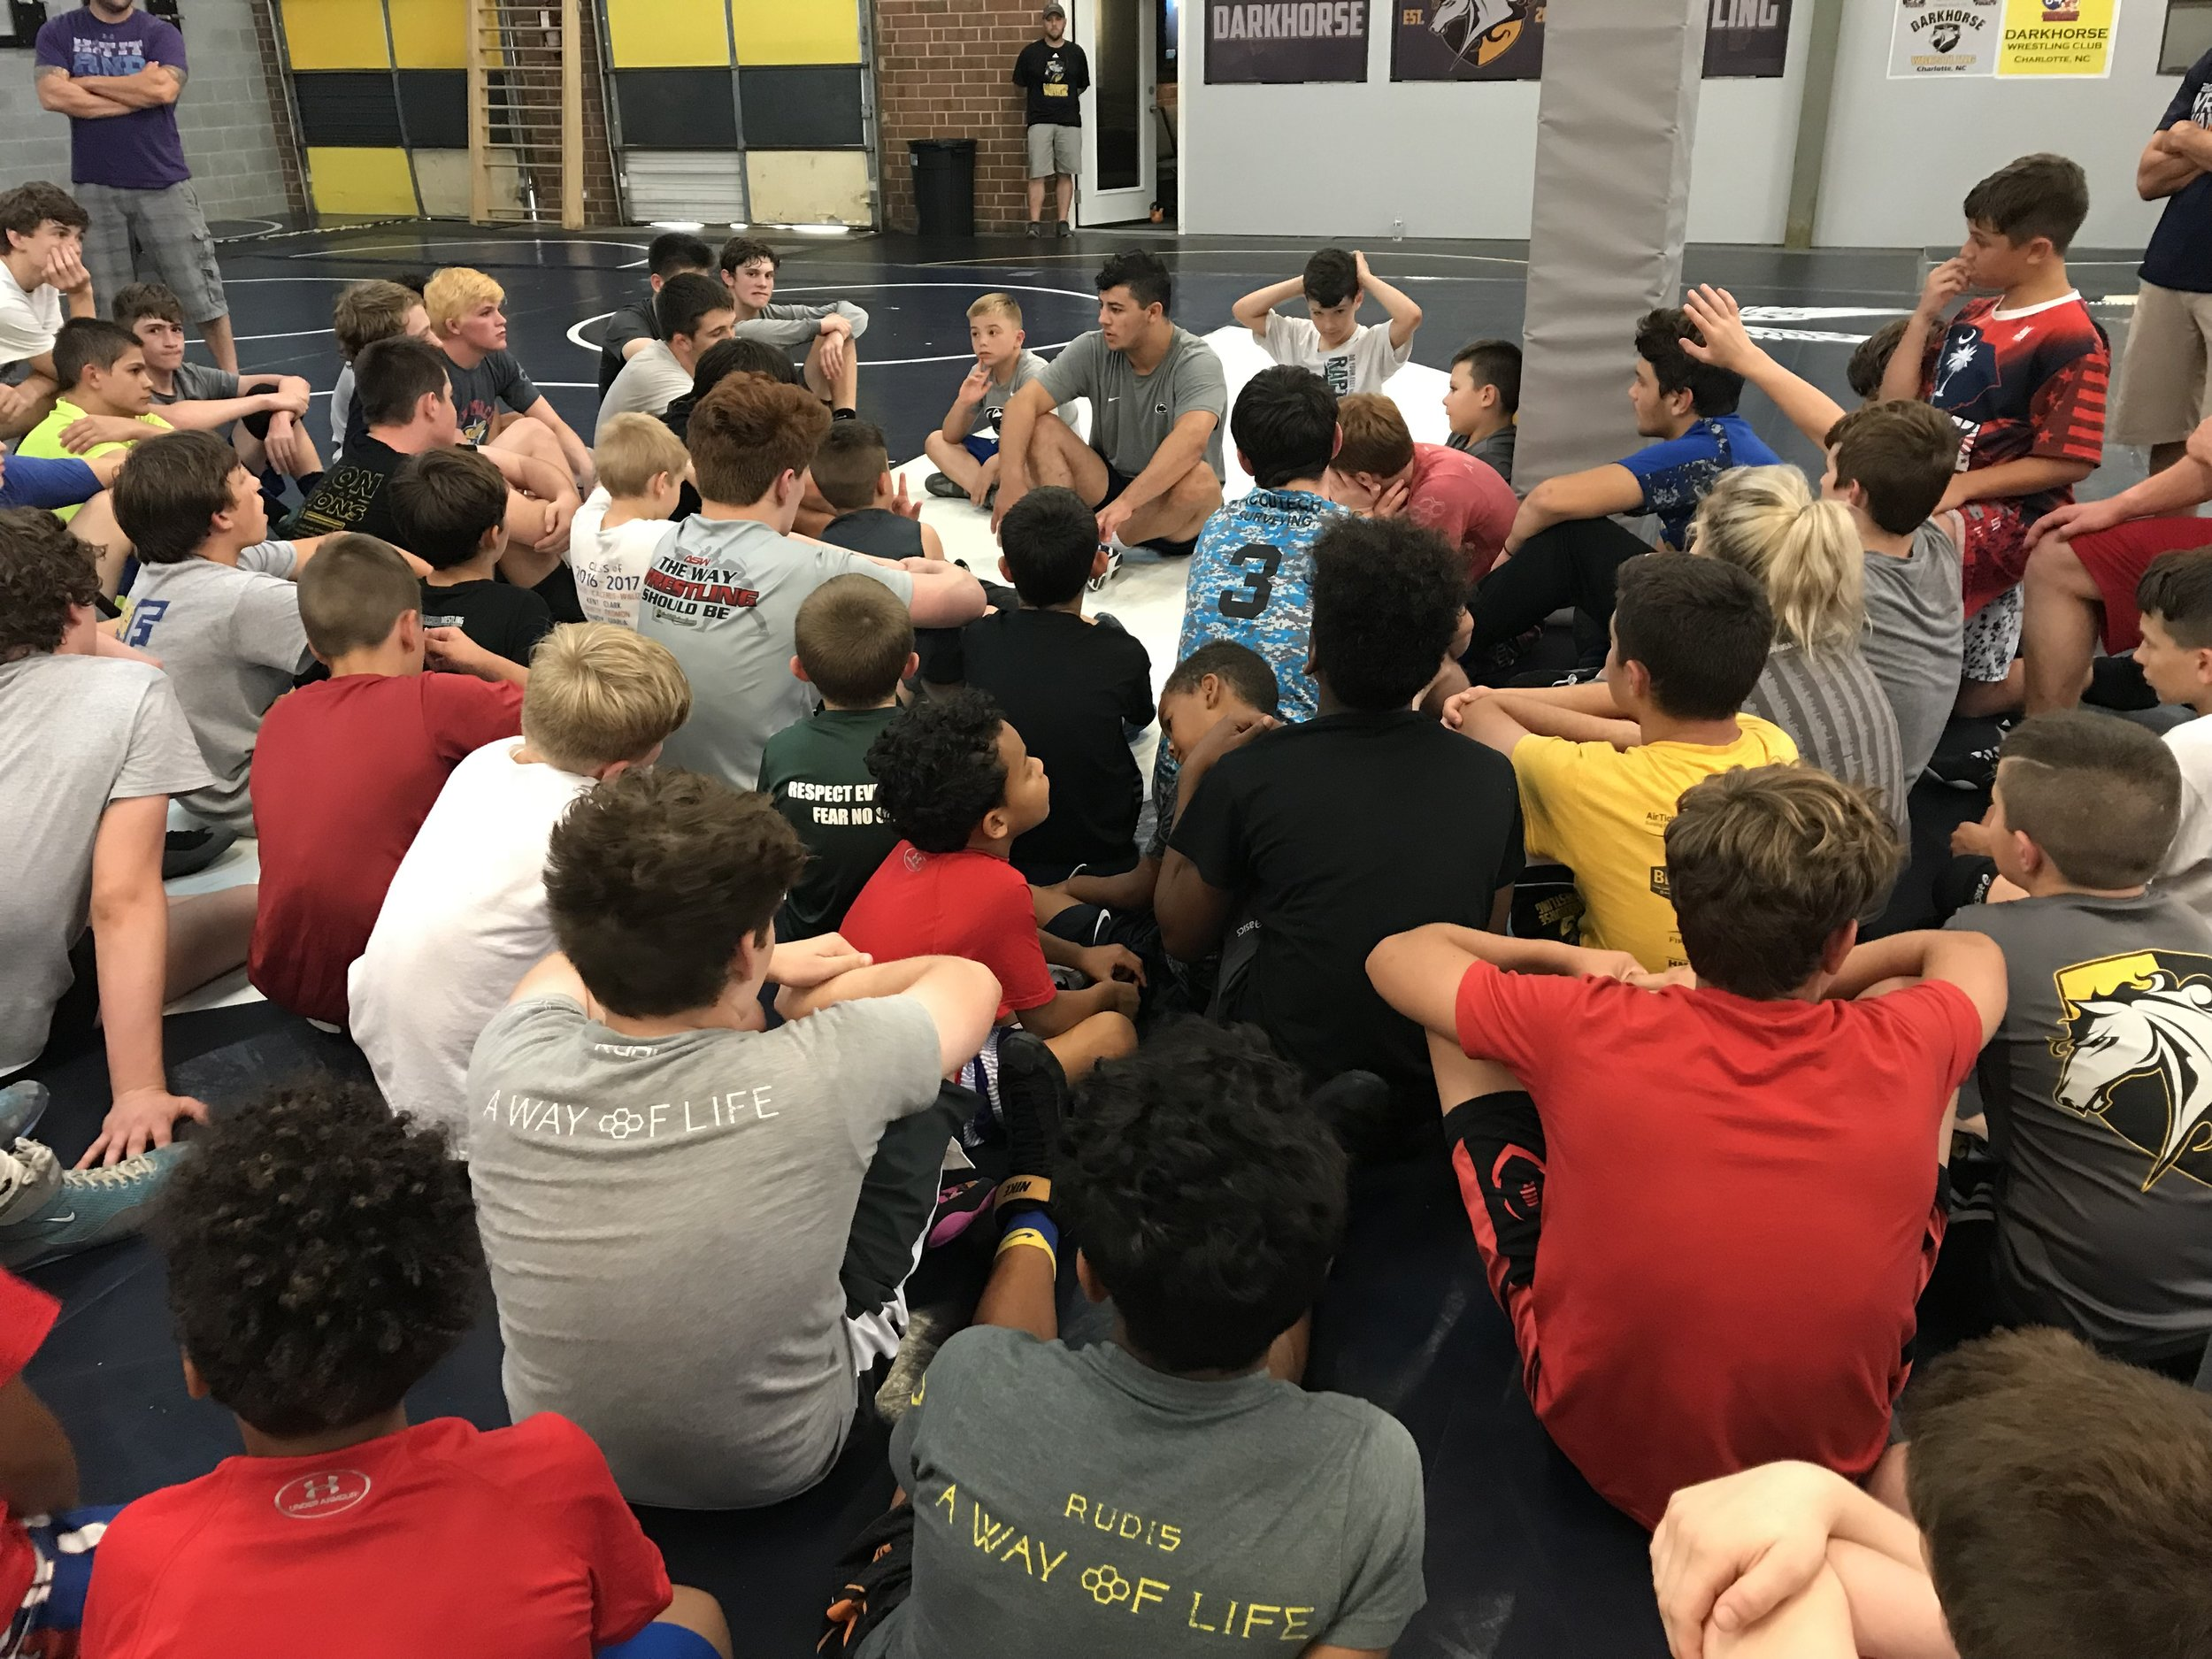 Vincenzo Joseph talking with Darkhorse campers about the importance of mental preparation.